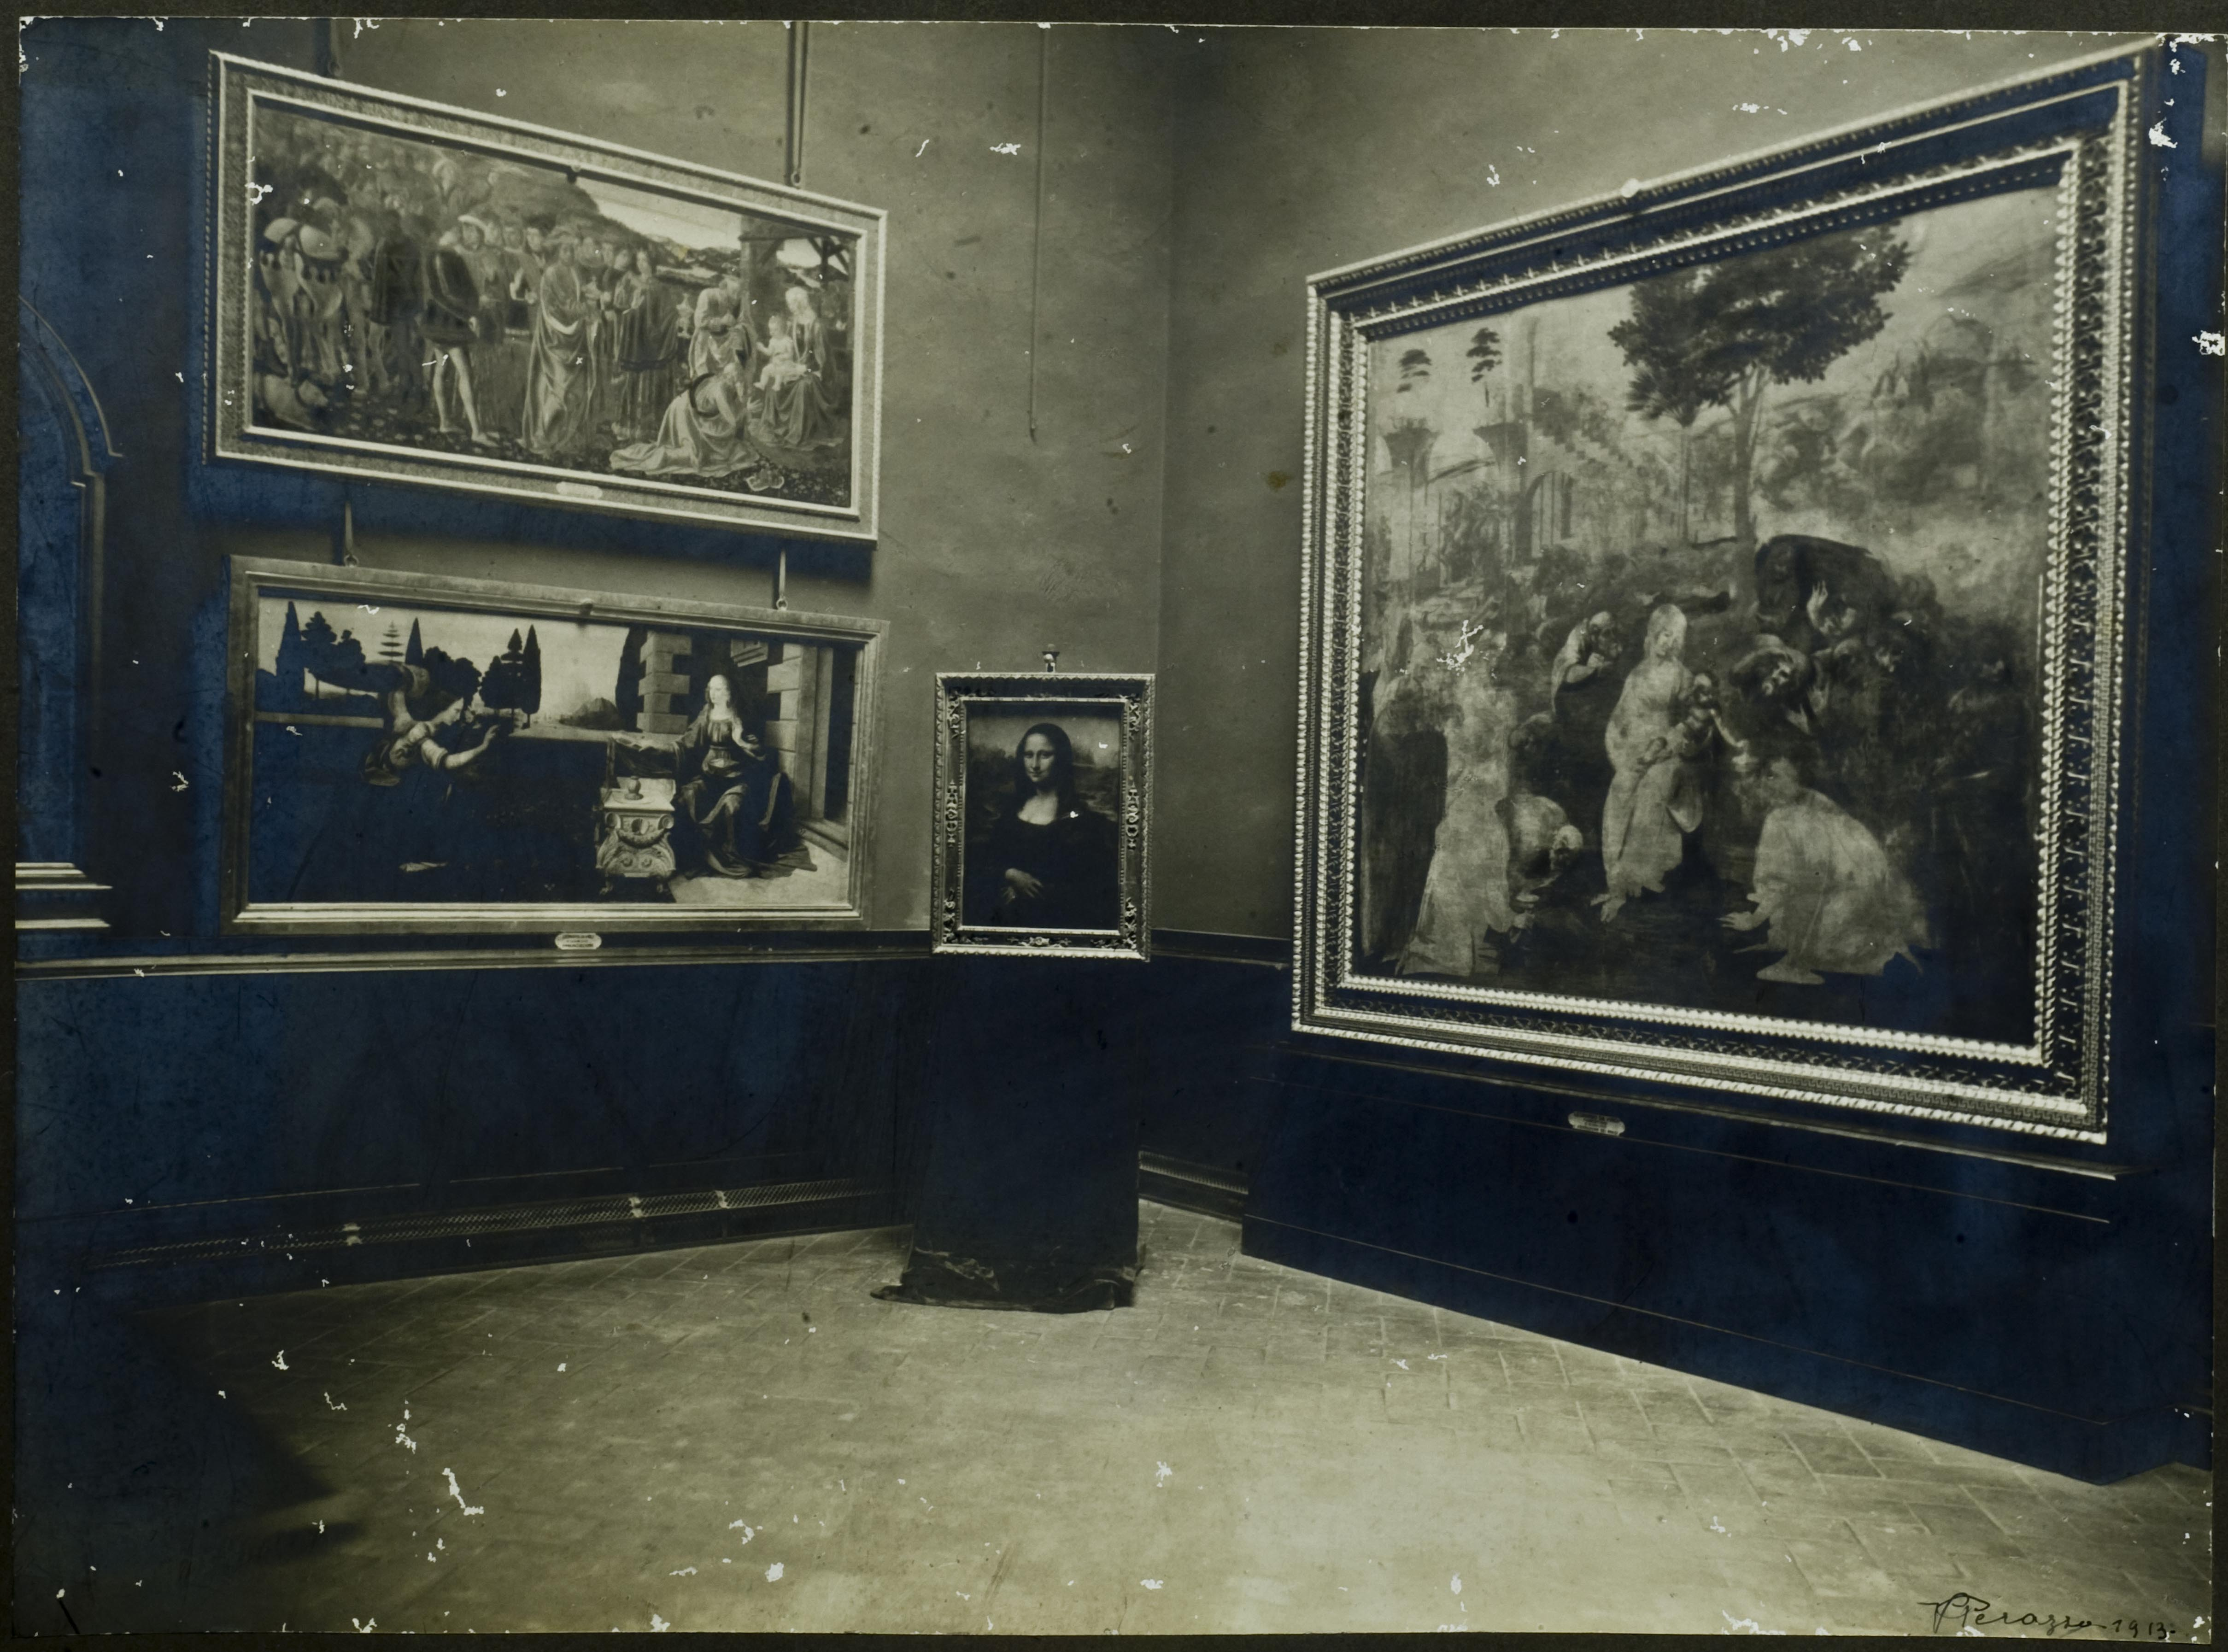 Photograph of the Leonardo Room in the Uffizi, from the Archivio delle Gallerie Fiorentine, documenting the Mona Lisa in the Uffizi, where it was exhibited for a few days in 1914 following its theft from the Louvre in 1911 and discovery in Florence in 1913.